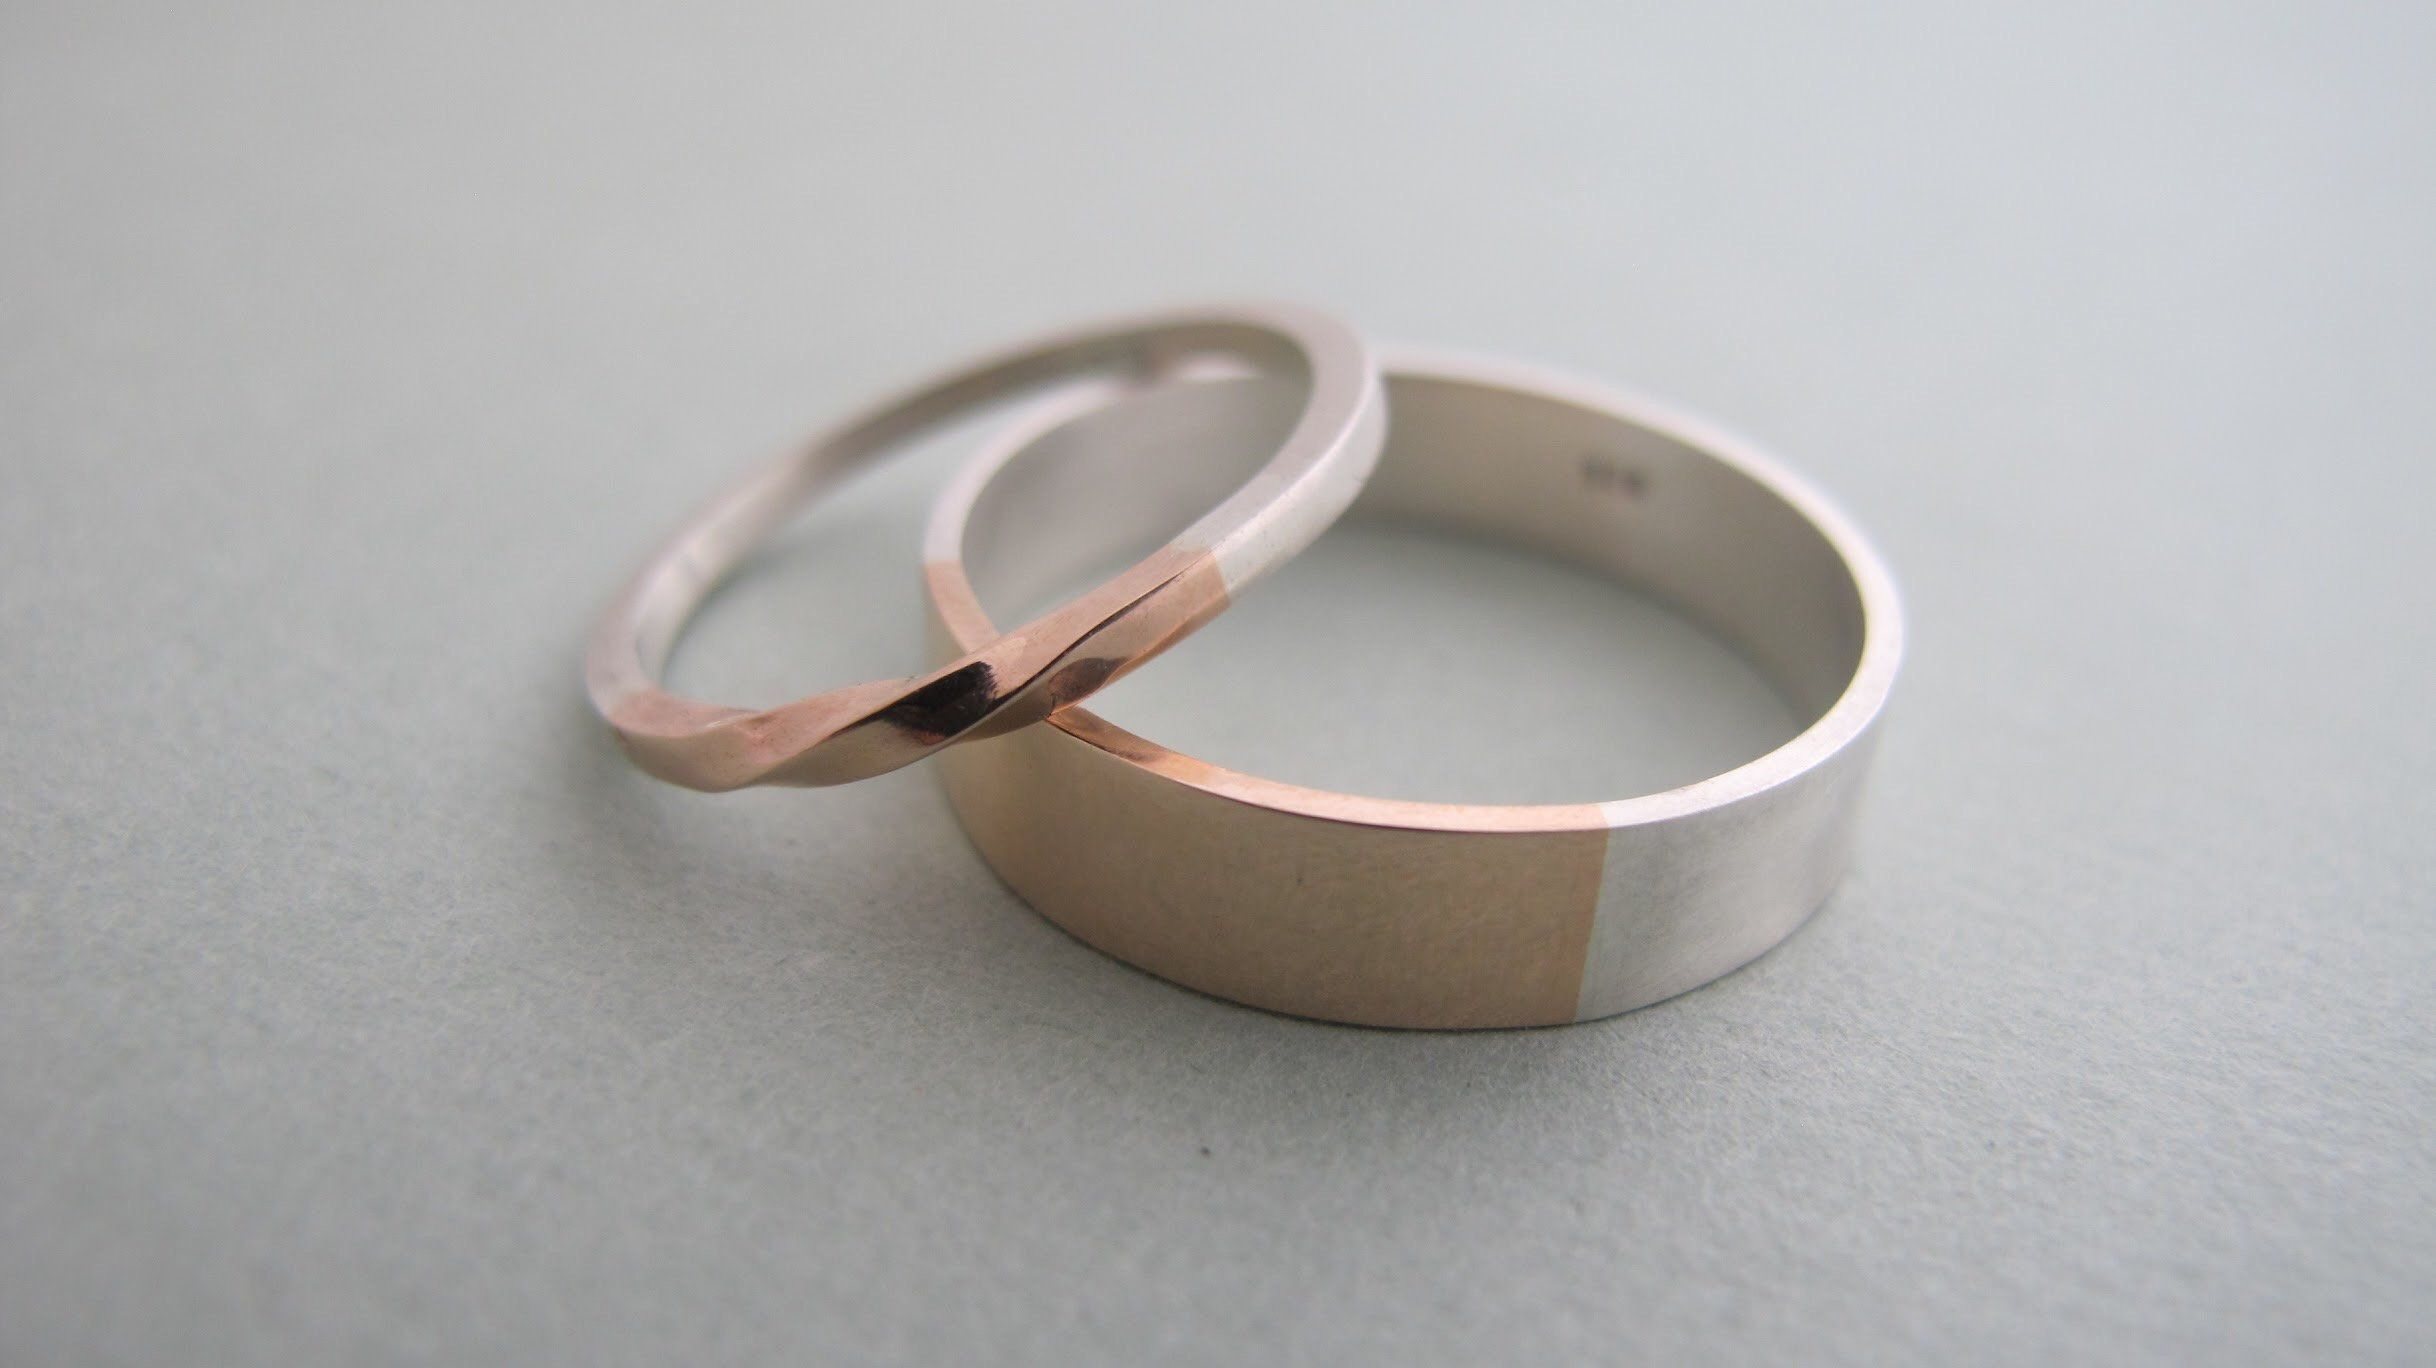 Matching Delicate Wedding Couples Jewelry Dainty Bands Rings Band Ring Set For Andweddin Couples Ring Set Matching Wedding Bands Wedding Band Sets